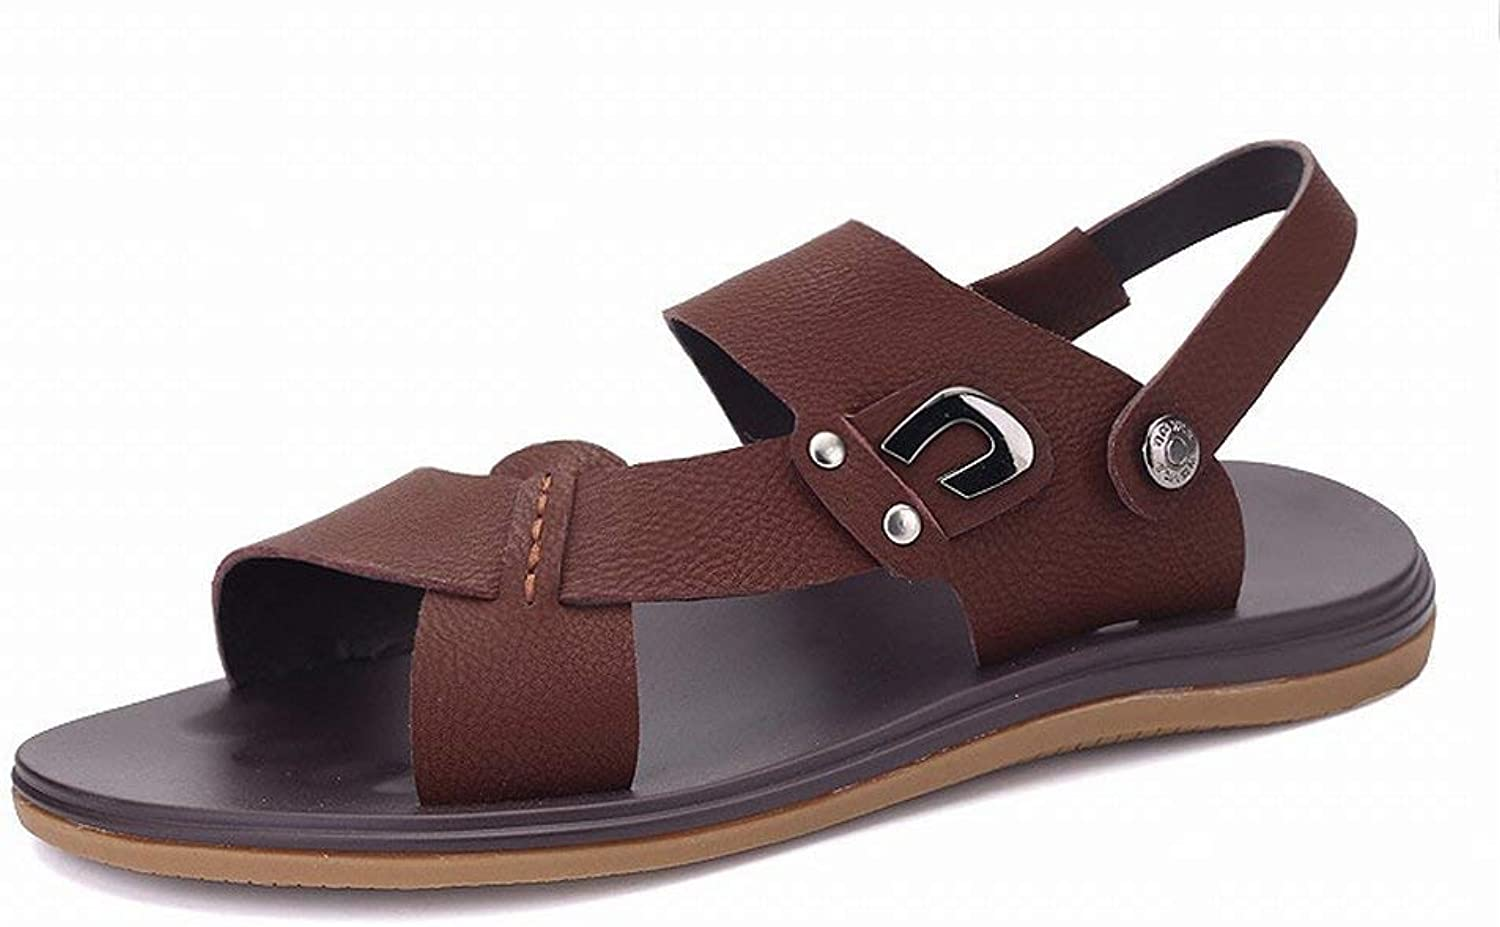 Fuxitoggo Fashion Casual Sandals Comfortable Soft Slippers Sole Leather All-match Mens Sandals (color   Brown, Size   39)